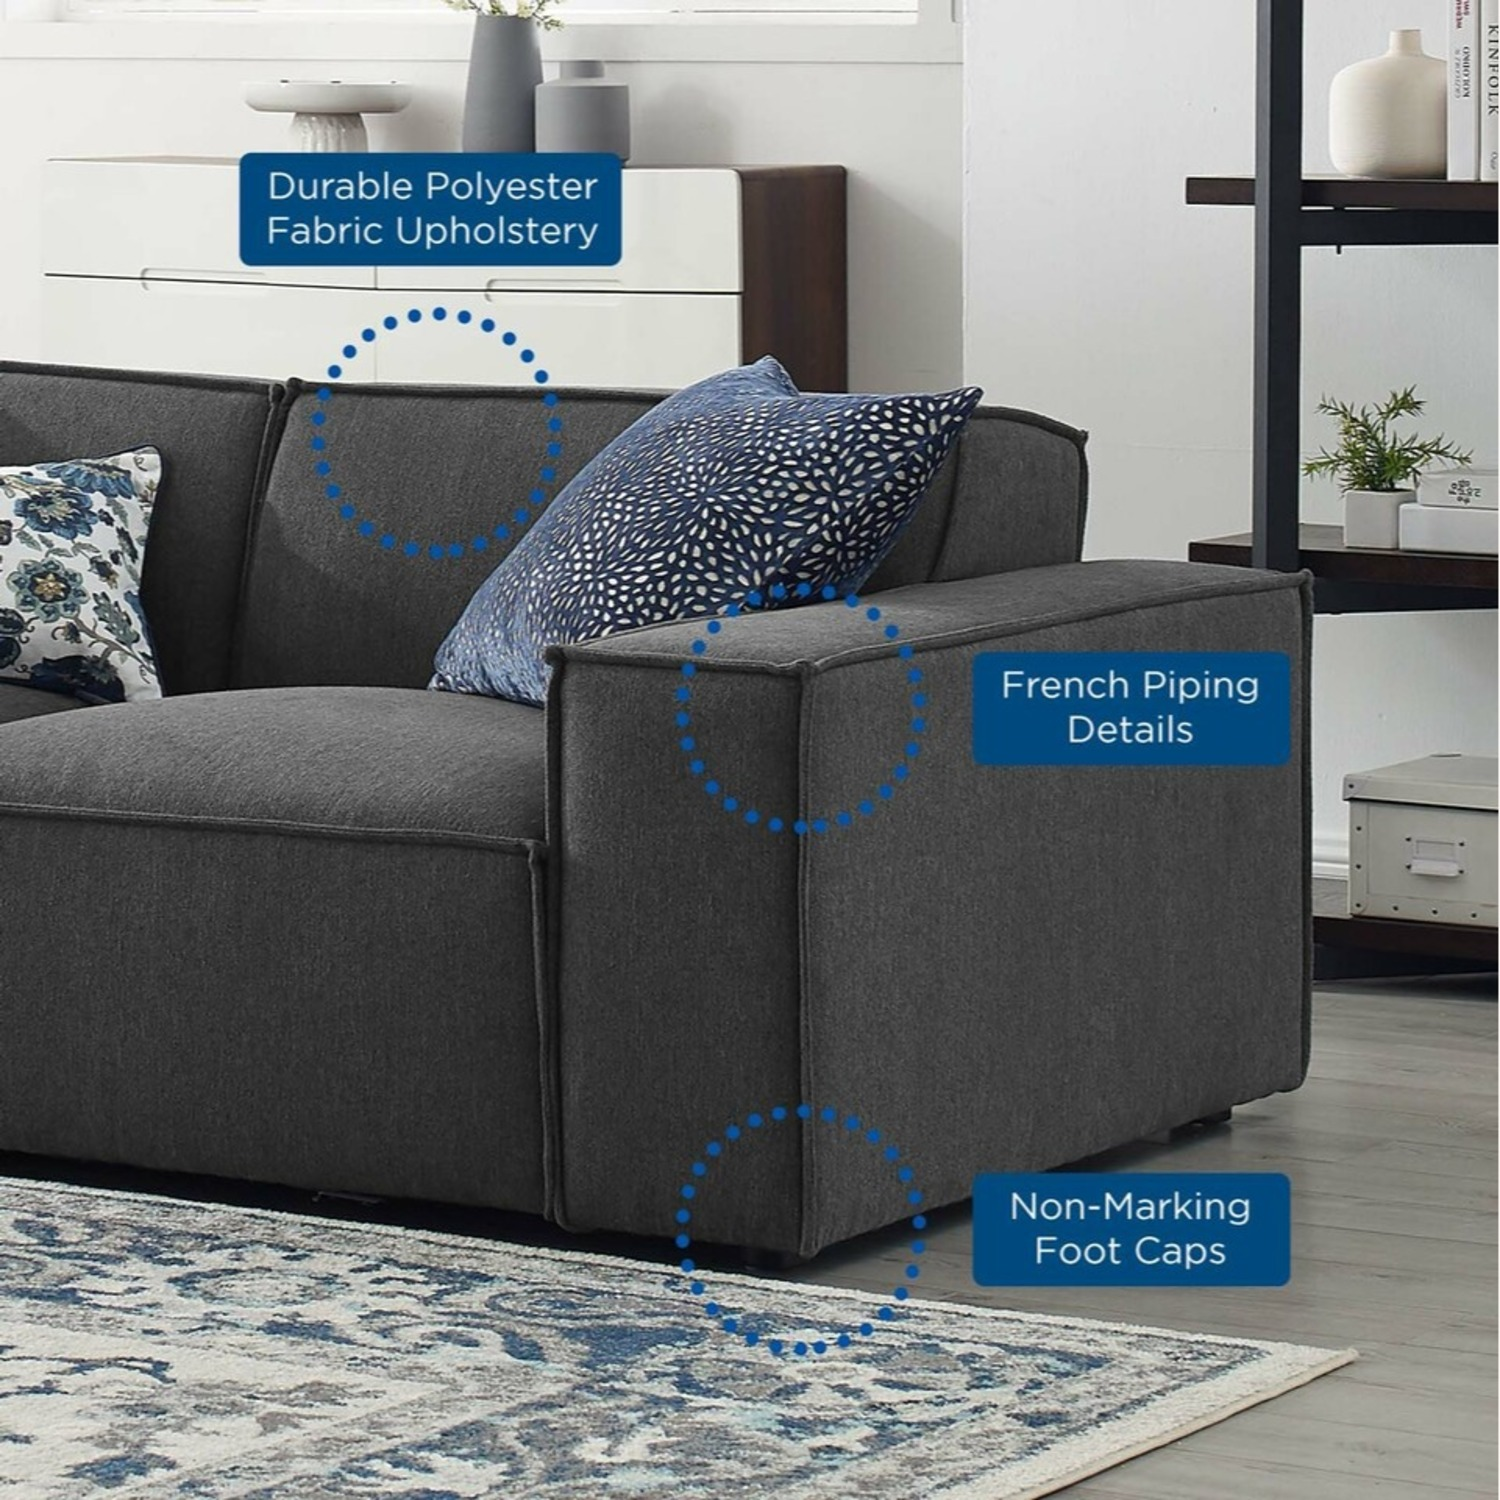 3-Piece Sectional Sofa In Charcoal Upholstery - image-10